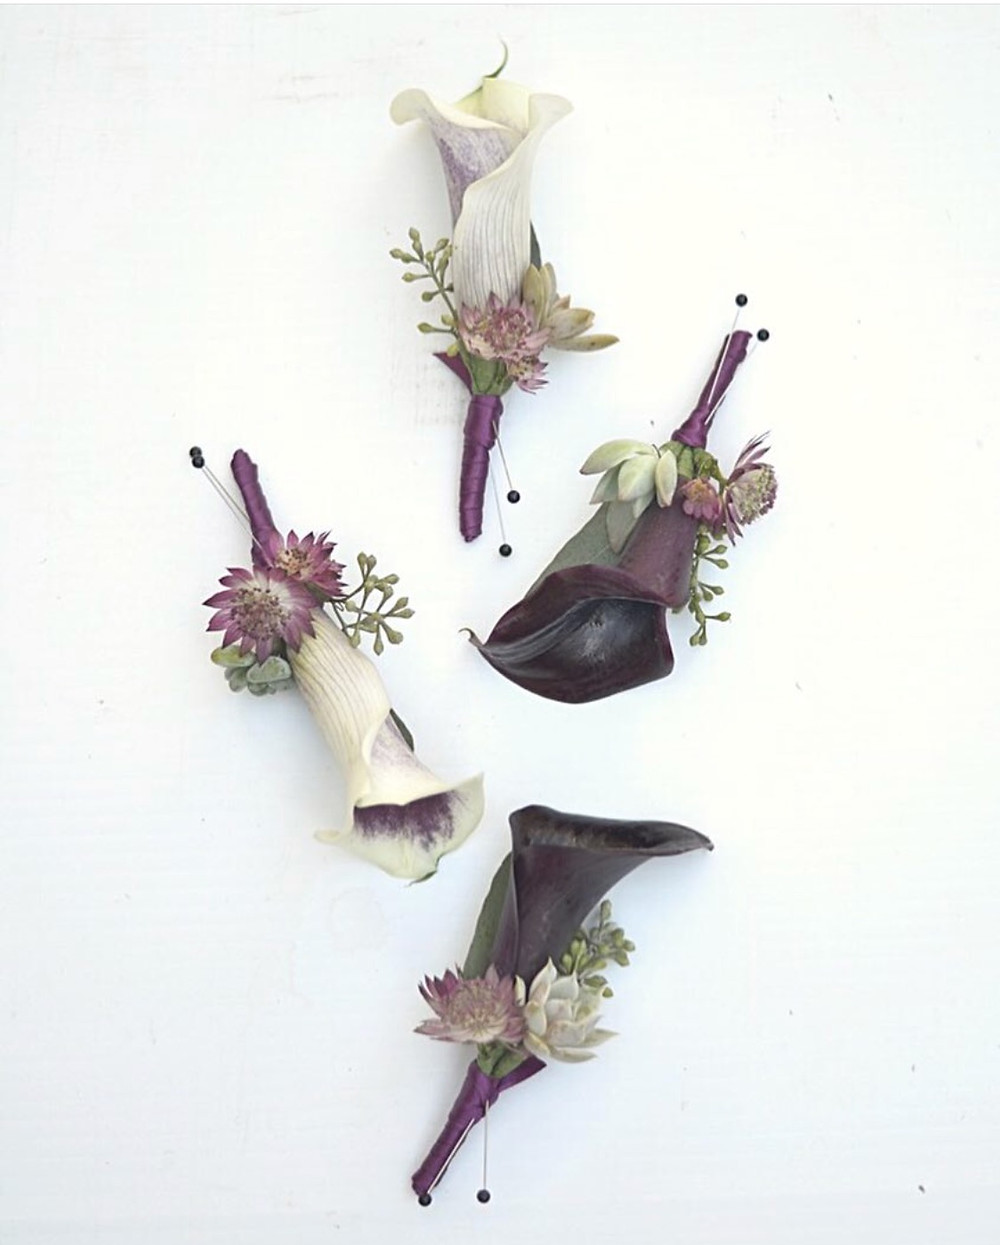 Calla lily boutonnieres with Astrantias, small Succulents and seeded Eucalyptus